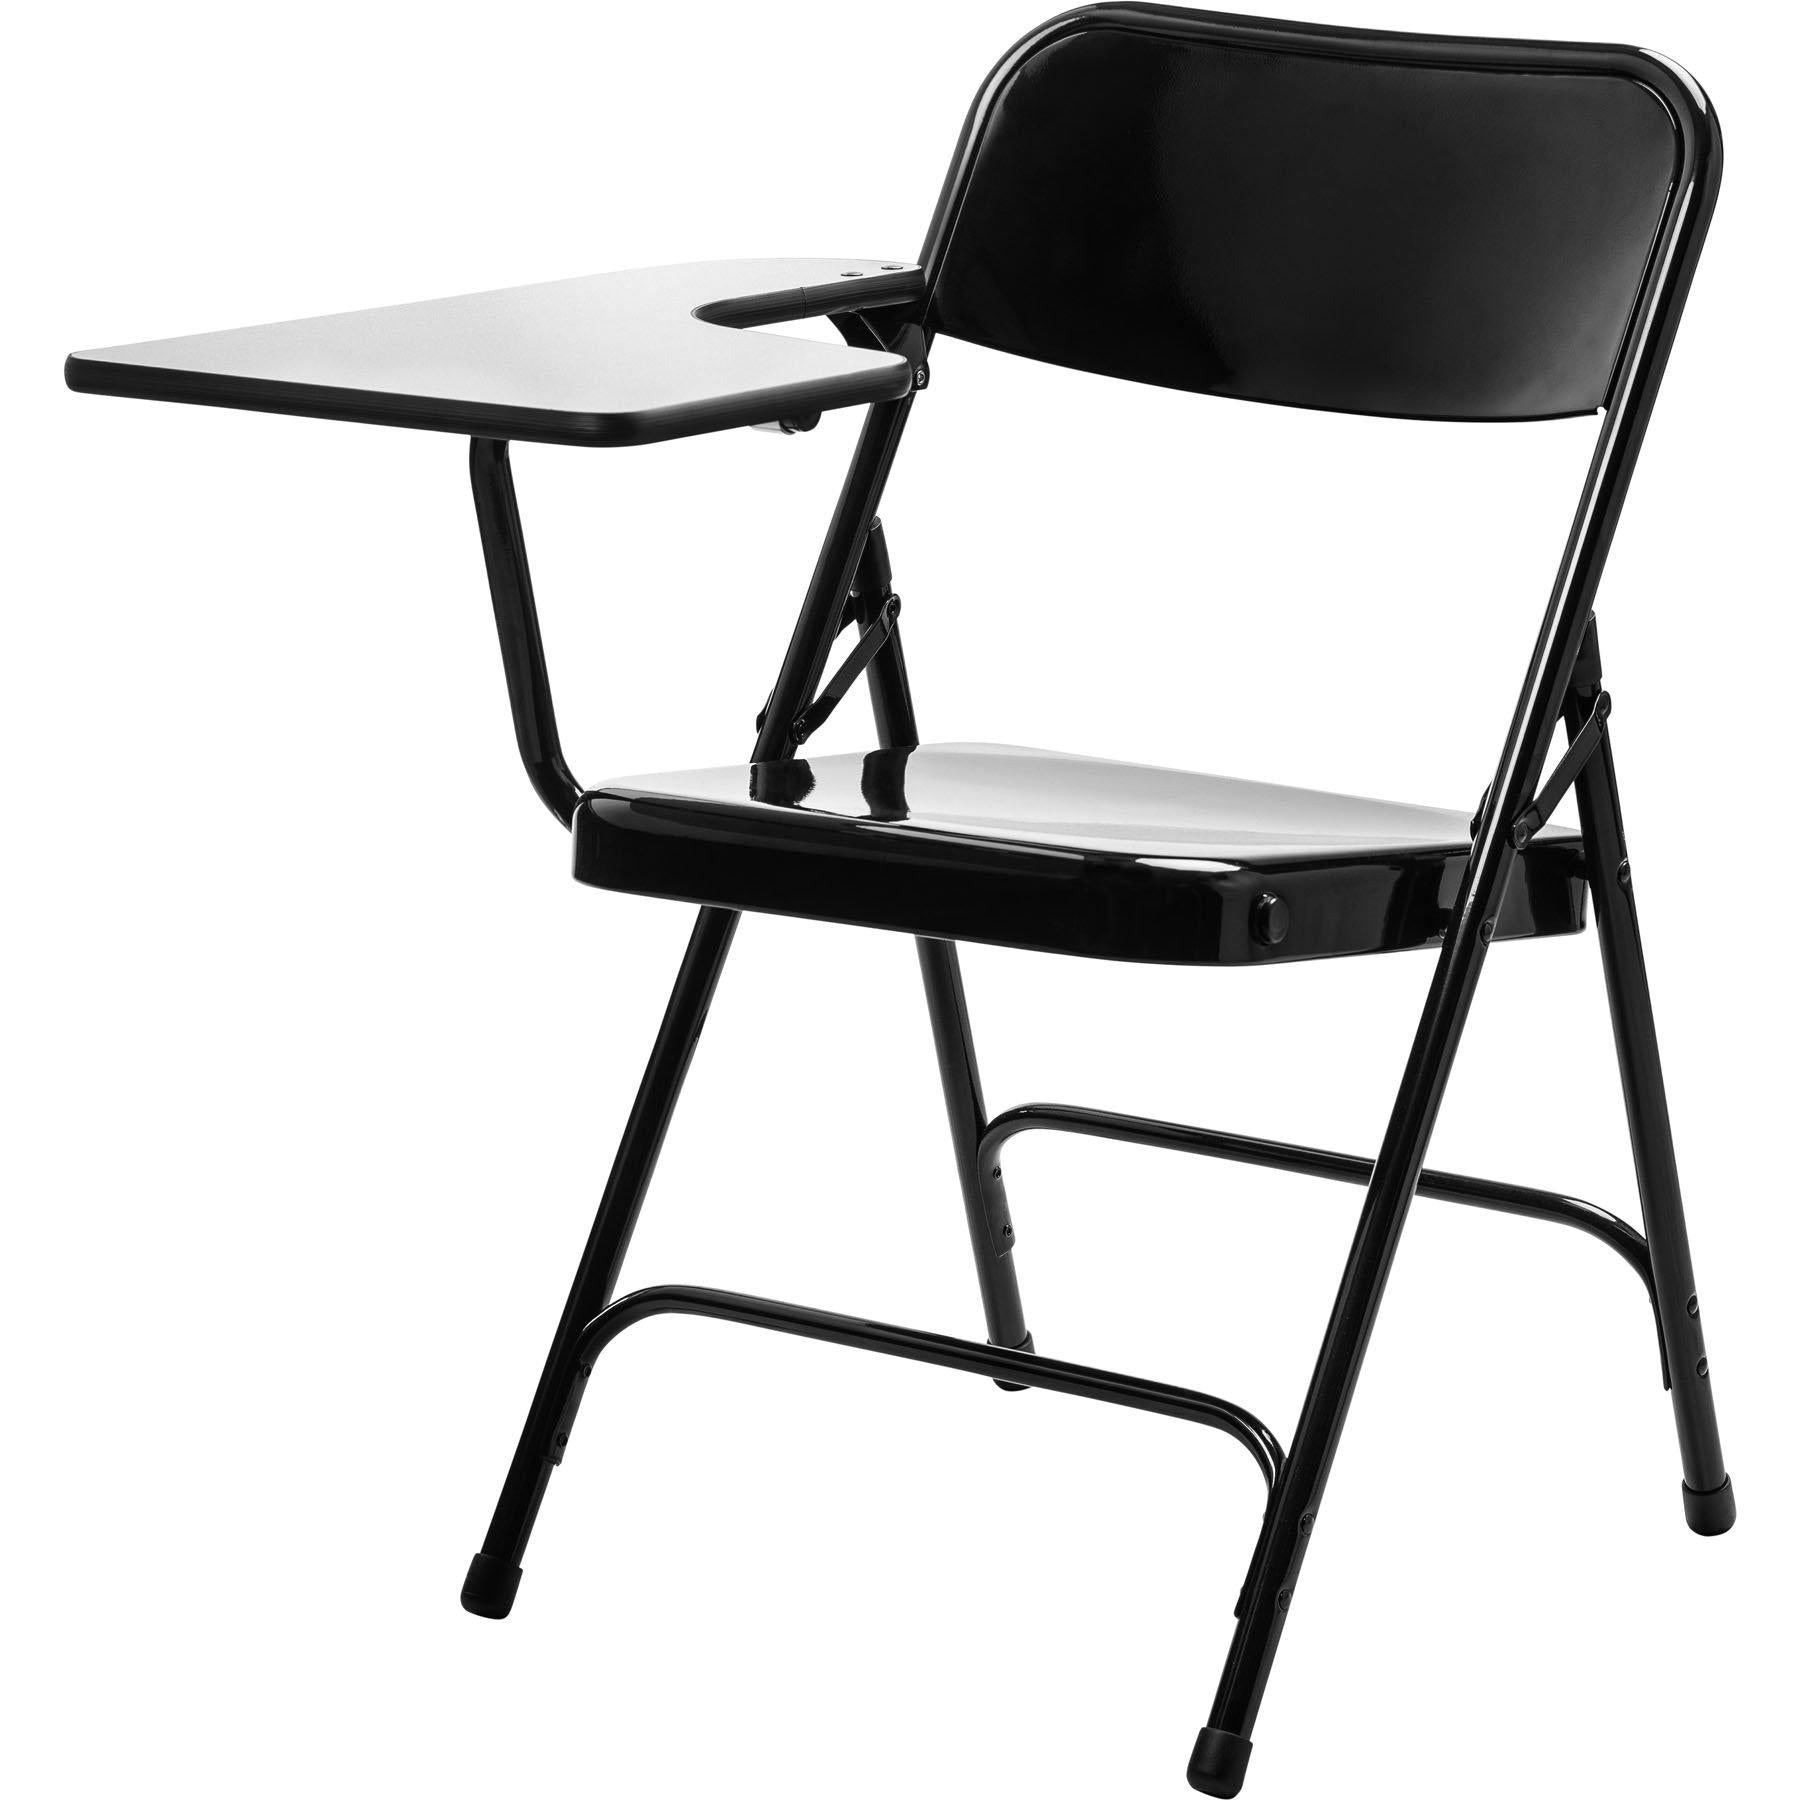 Tablet Arm Folding Chair, Black, Carton of 2